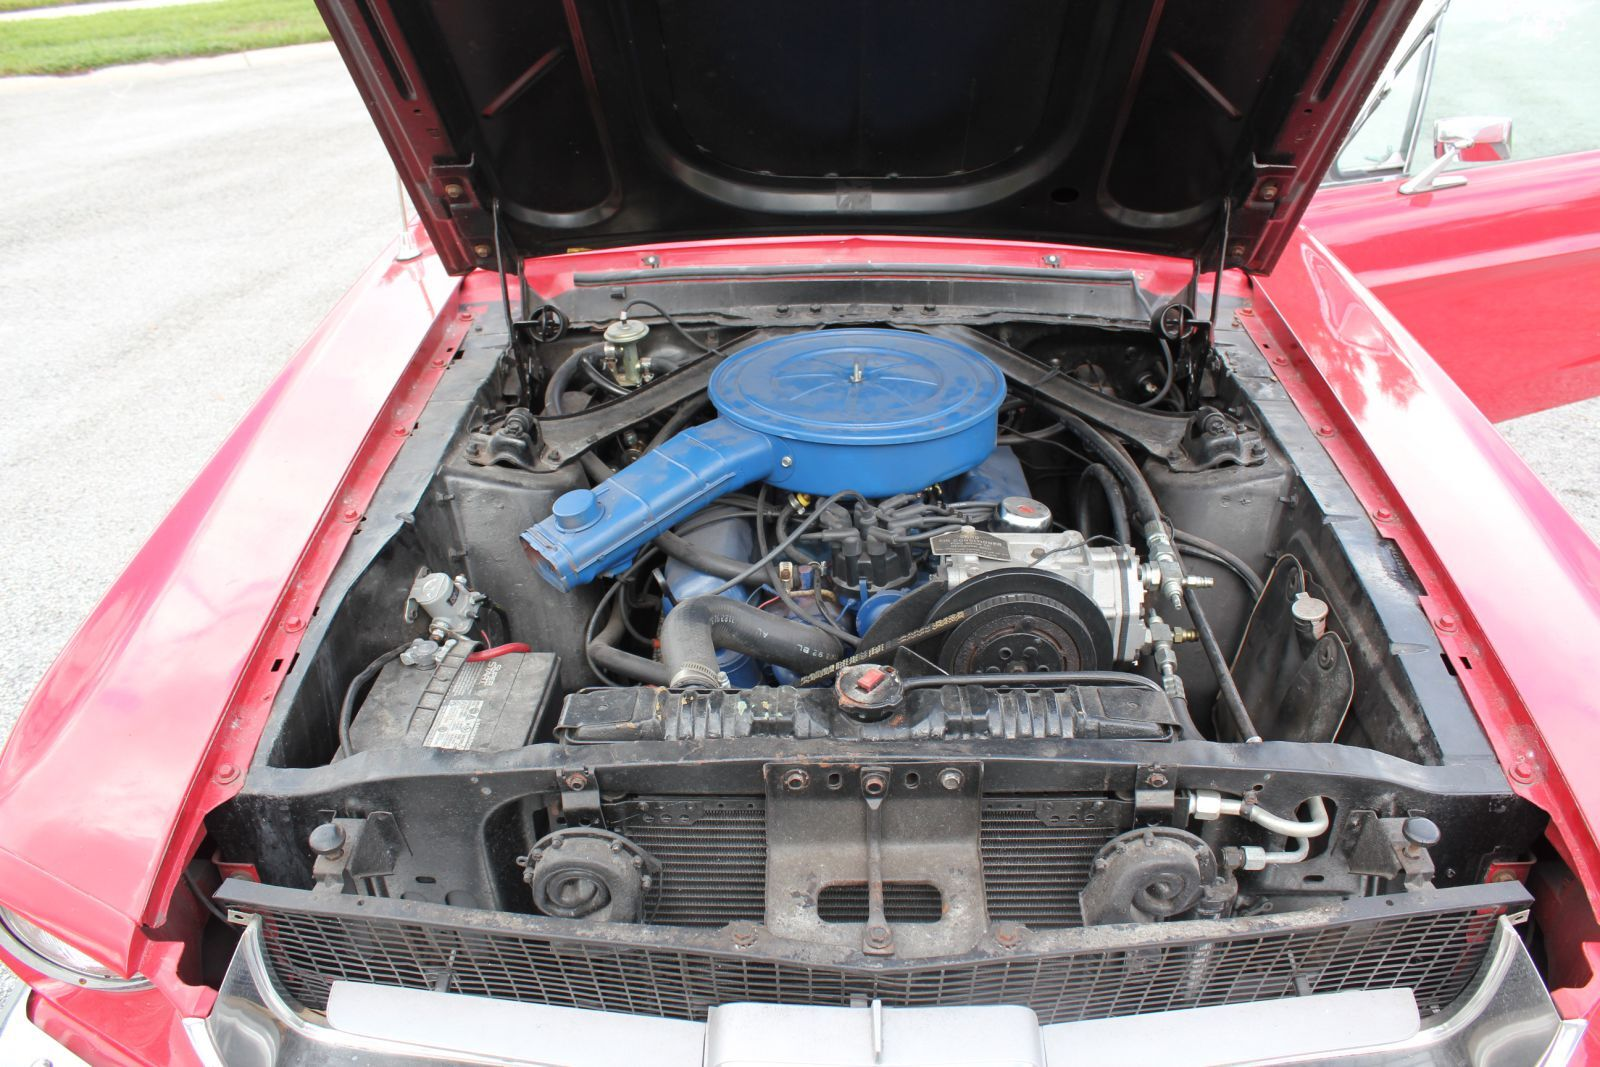 (Sample) The engine compartment from a 1967 Ford Mustang